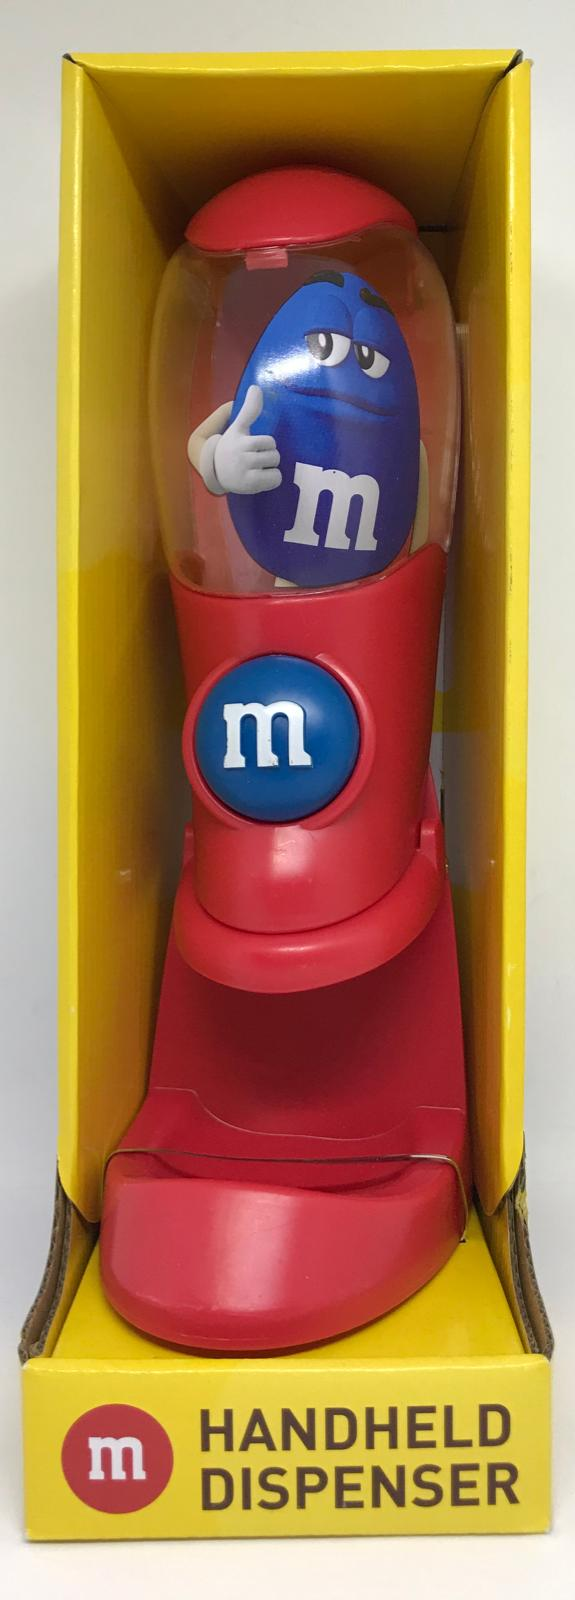 M&M's World Red Handheld Dispenser Candy Dispenser New with Box